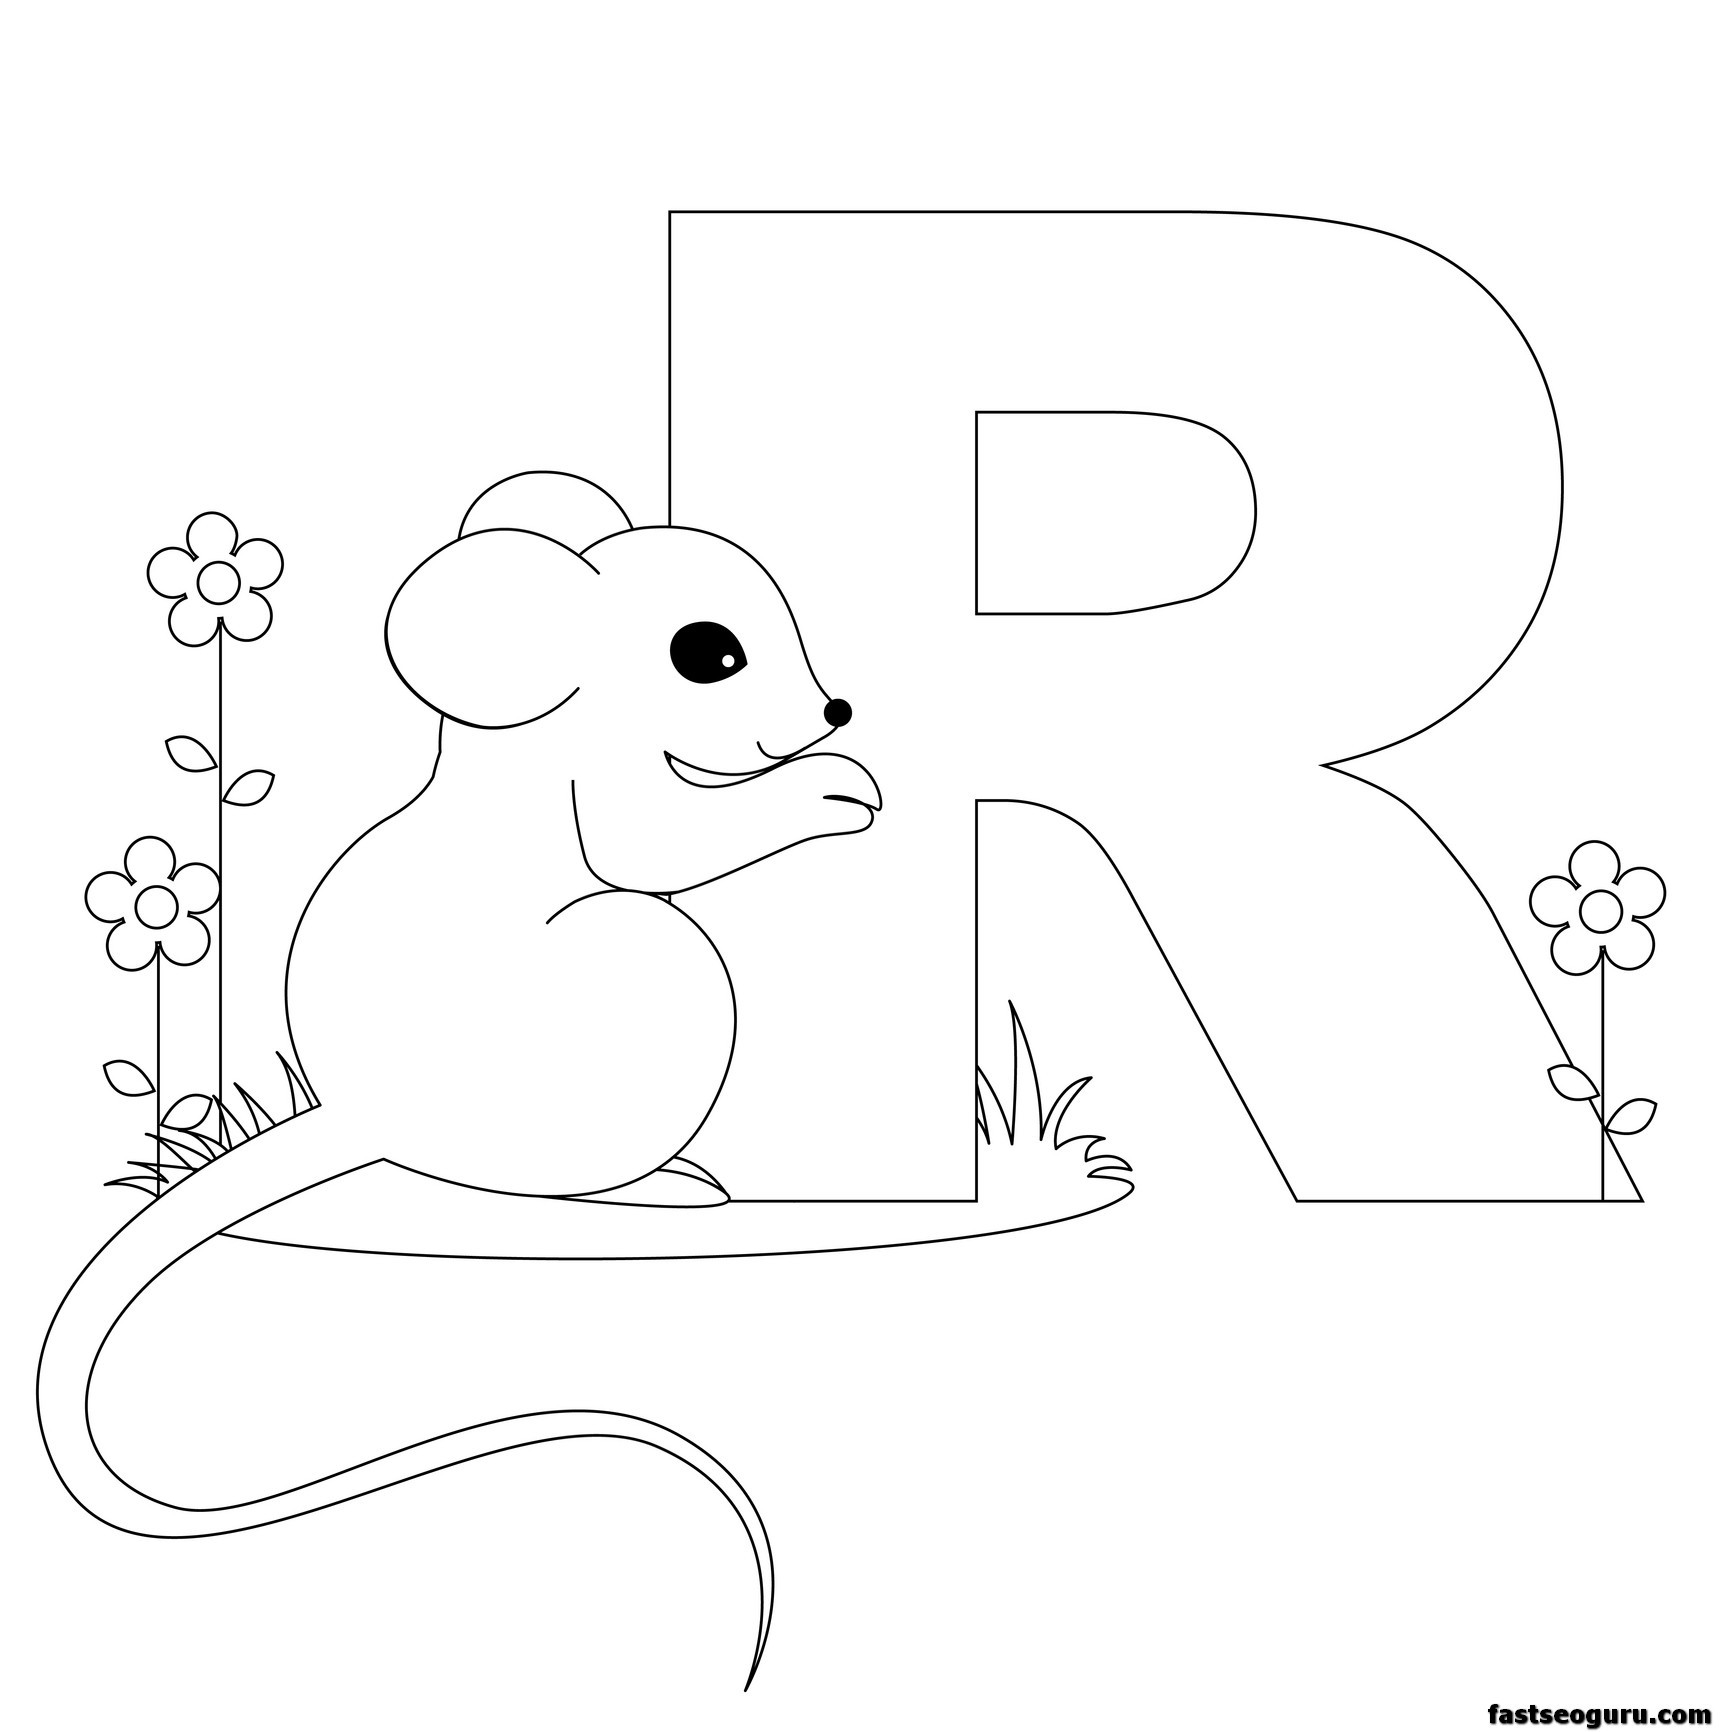 R Coloring Pages : Free alphabet r coloring pages